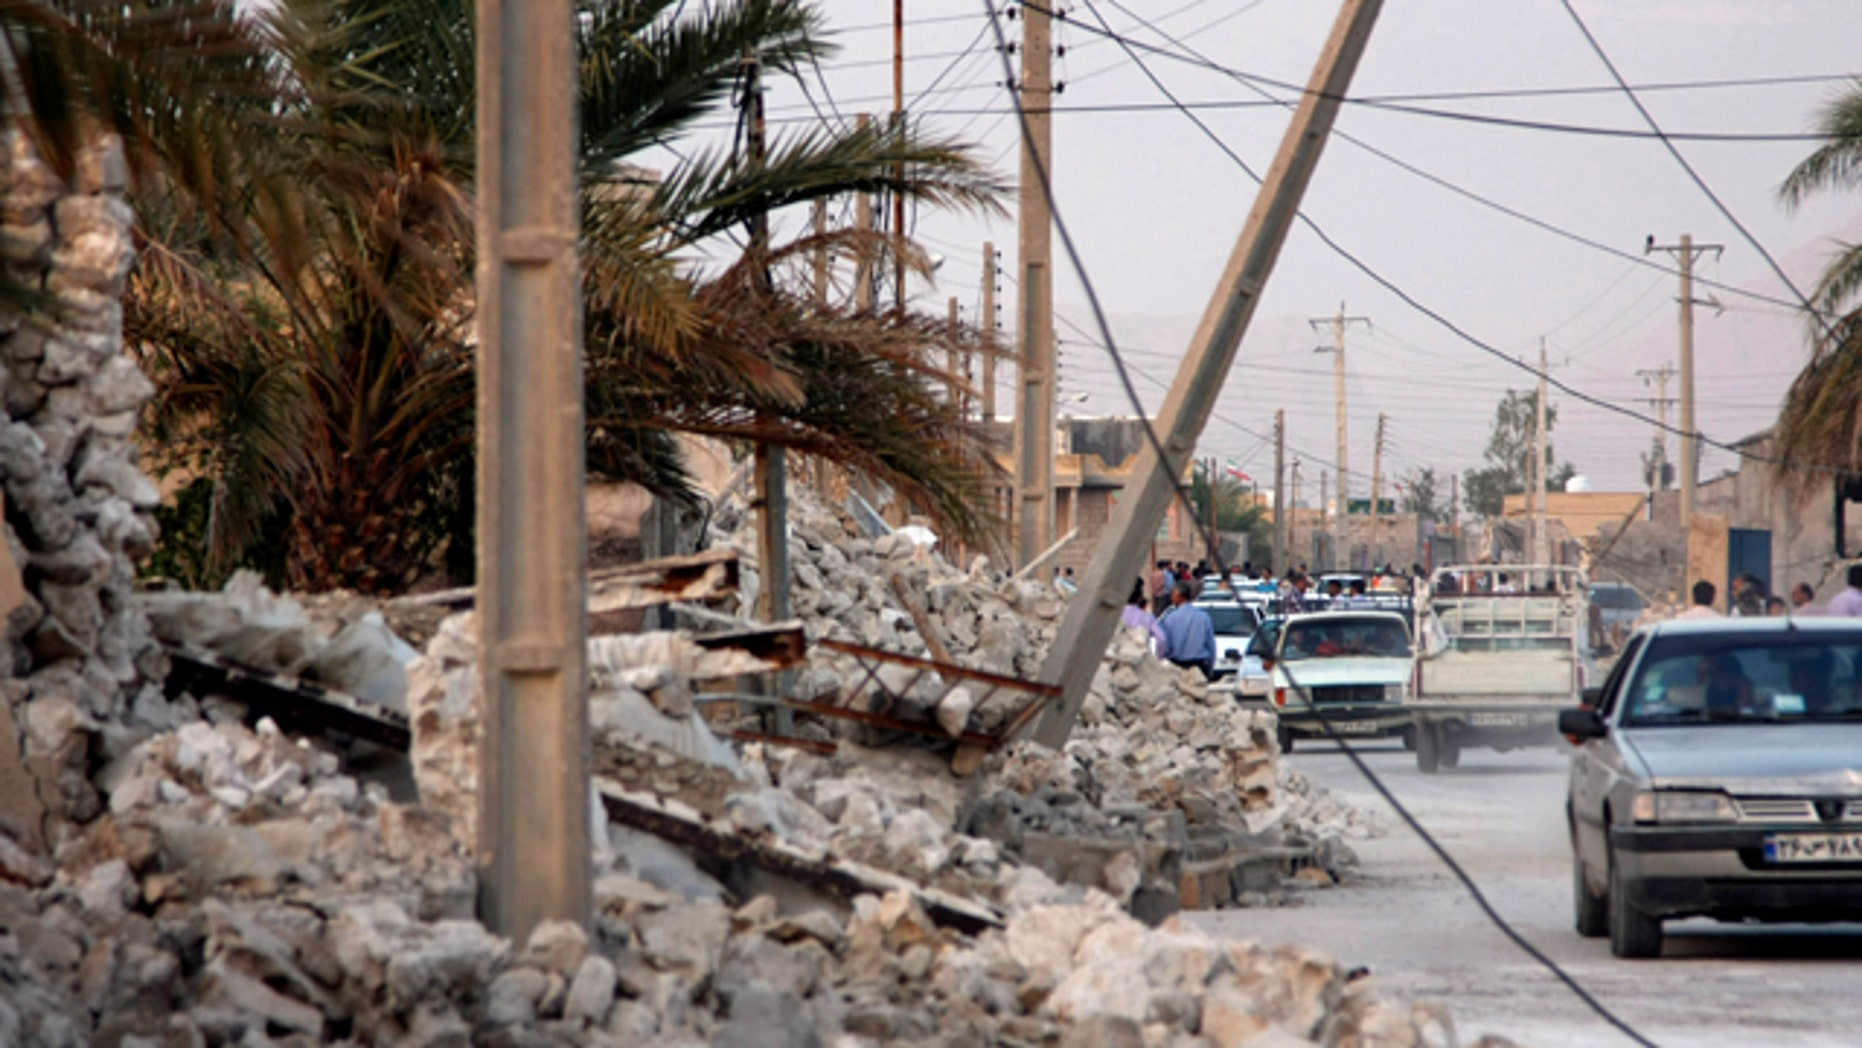 April 9, 2013: Vehicles make their way along structures destroyed by an earthquake which struck southern Iran in the city of Shonbeh, Iran.